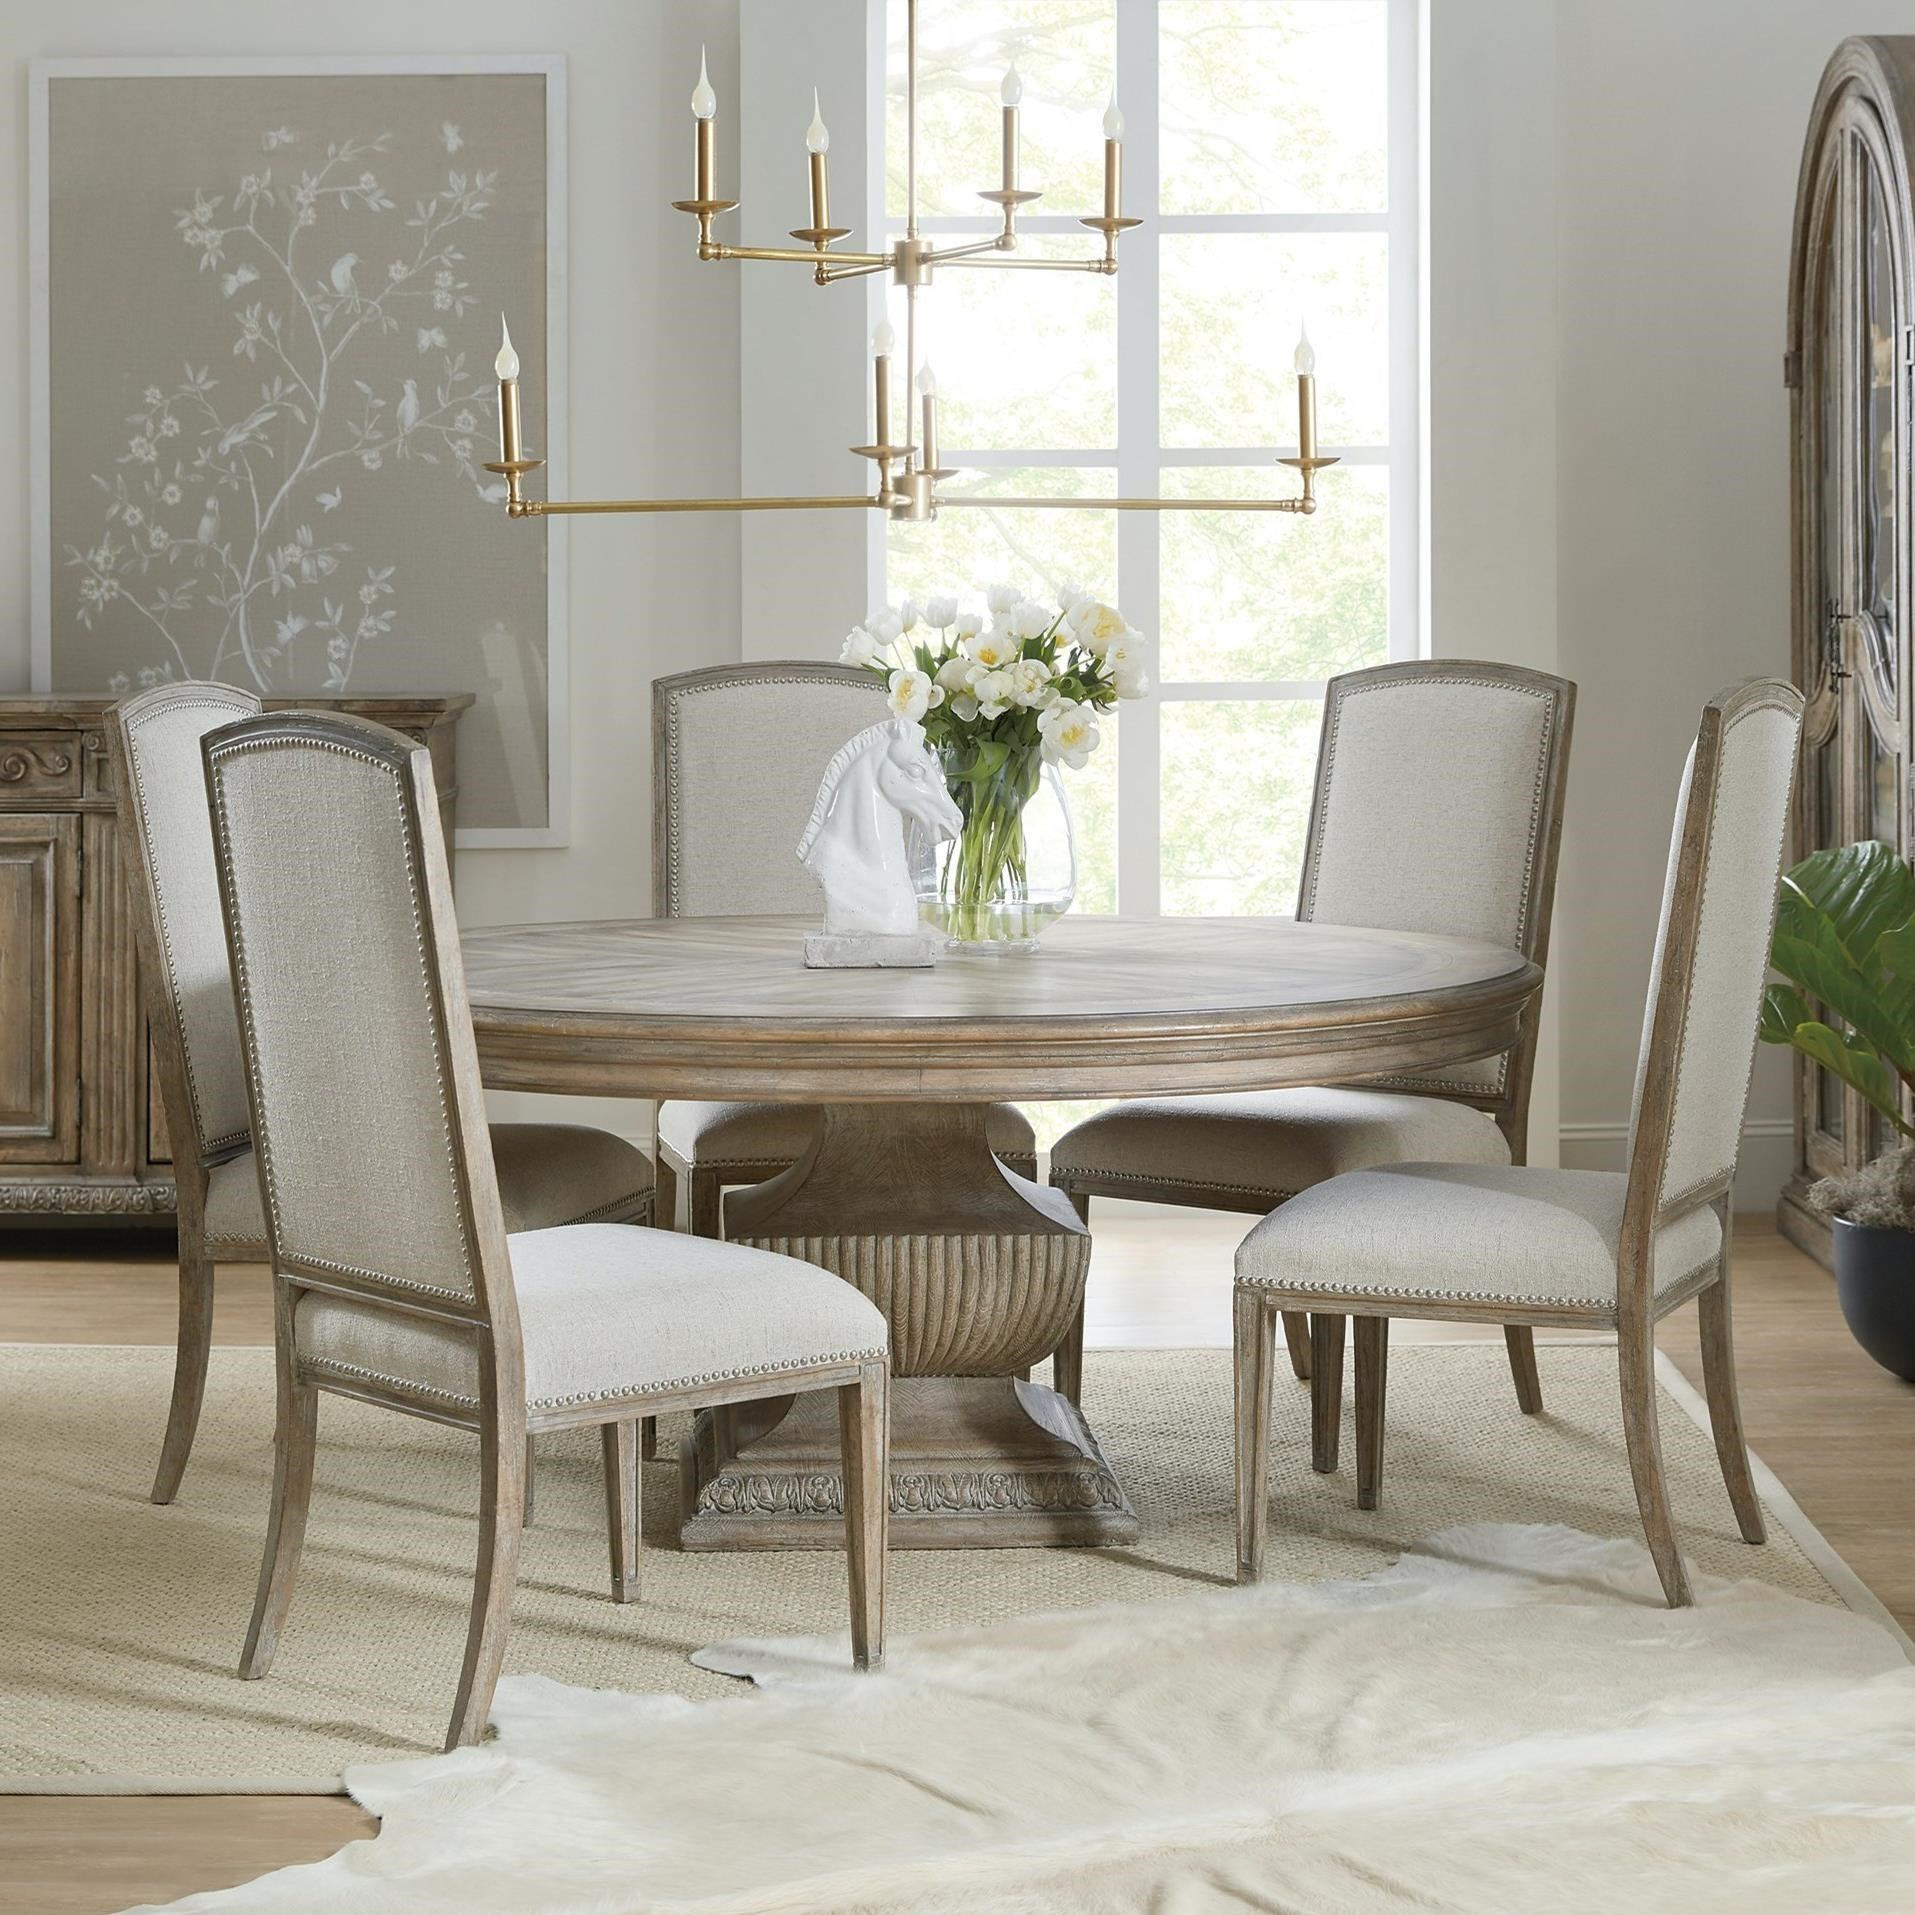 Castella 7-Piece Round Table and Chair Set by Hooker Furniture at Baer's Furniture